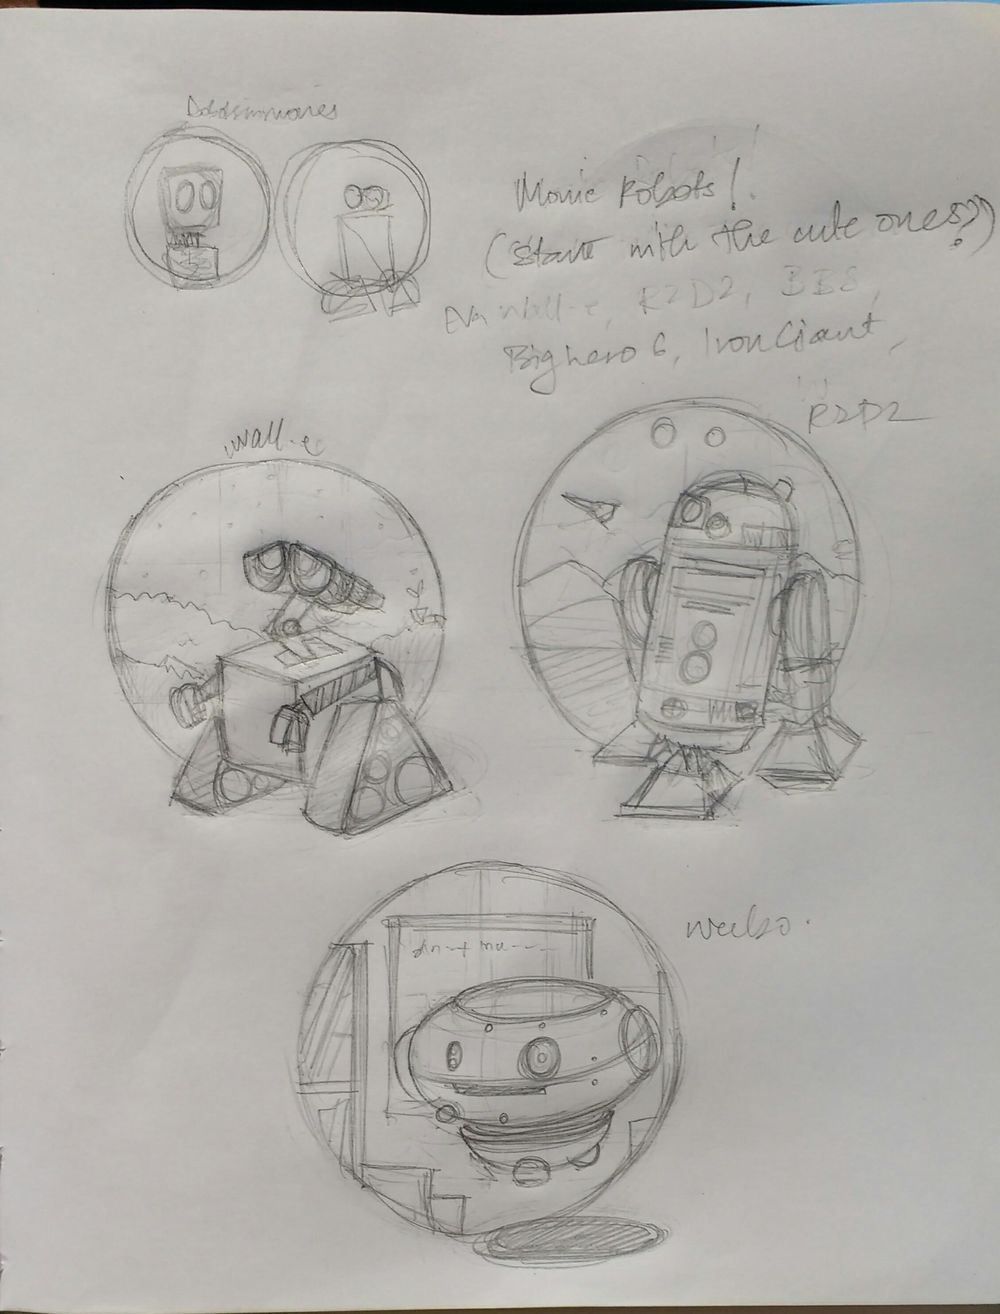 Movie Robots - image 11 - student project